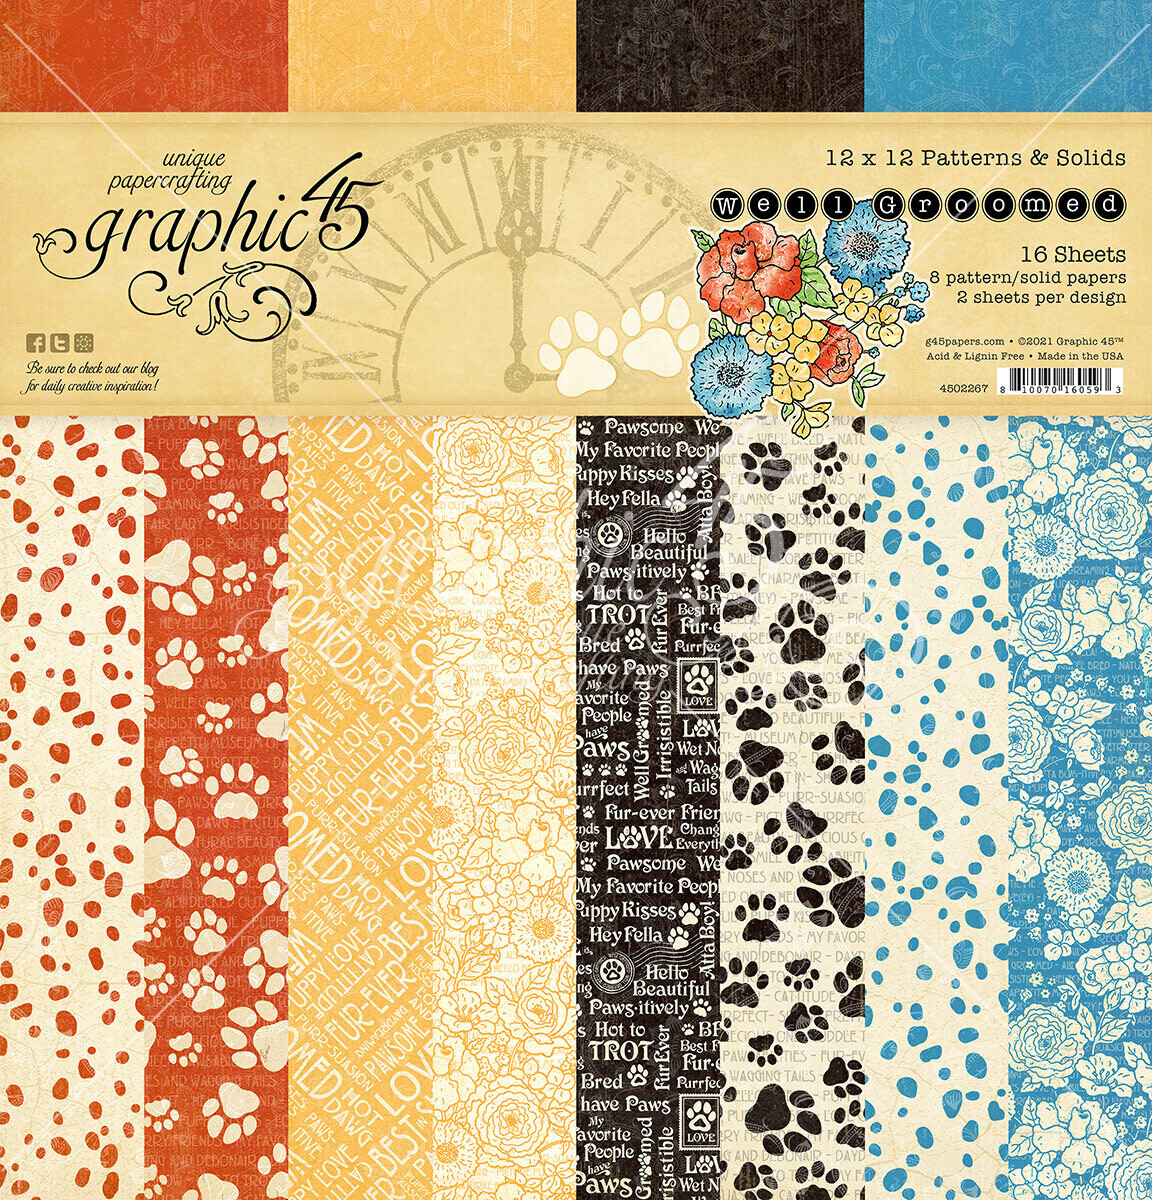 Well Groomed 12x12 Patterns and Solids - Graphic 45